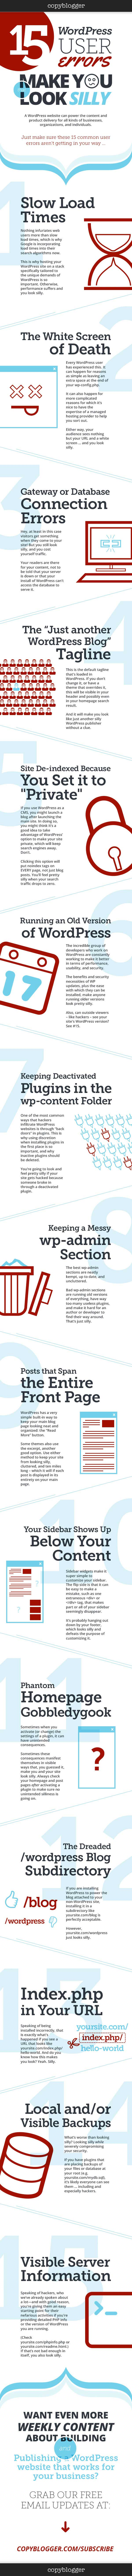 Wordpress Pitfalls-Infographic